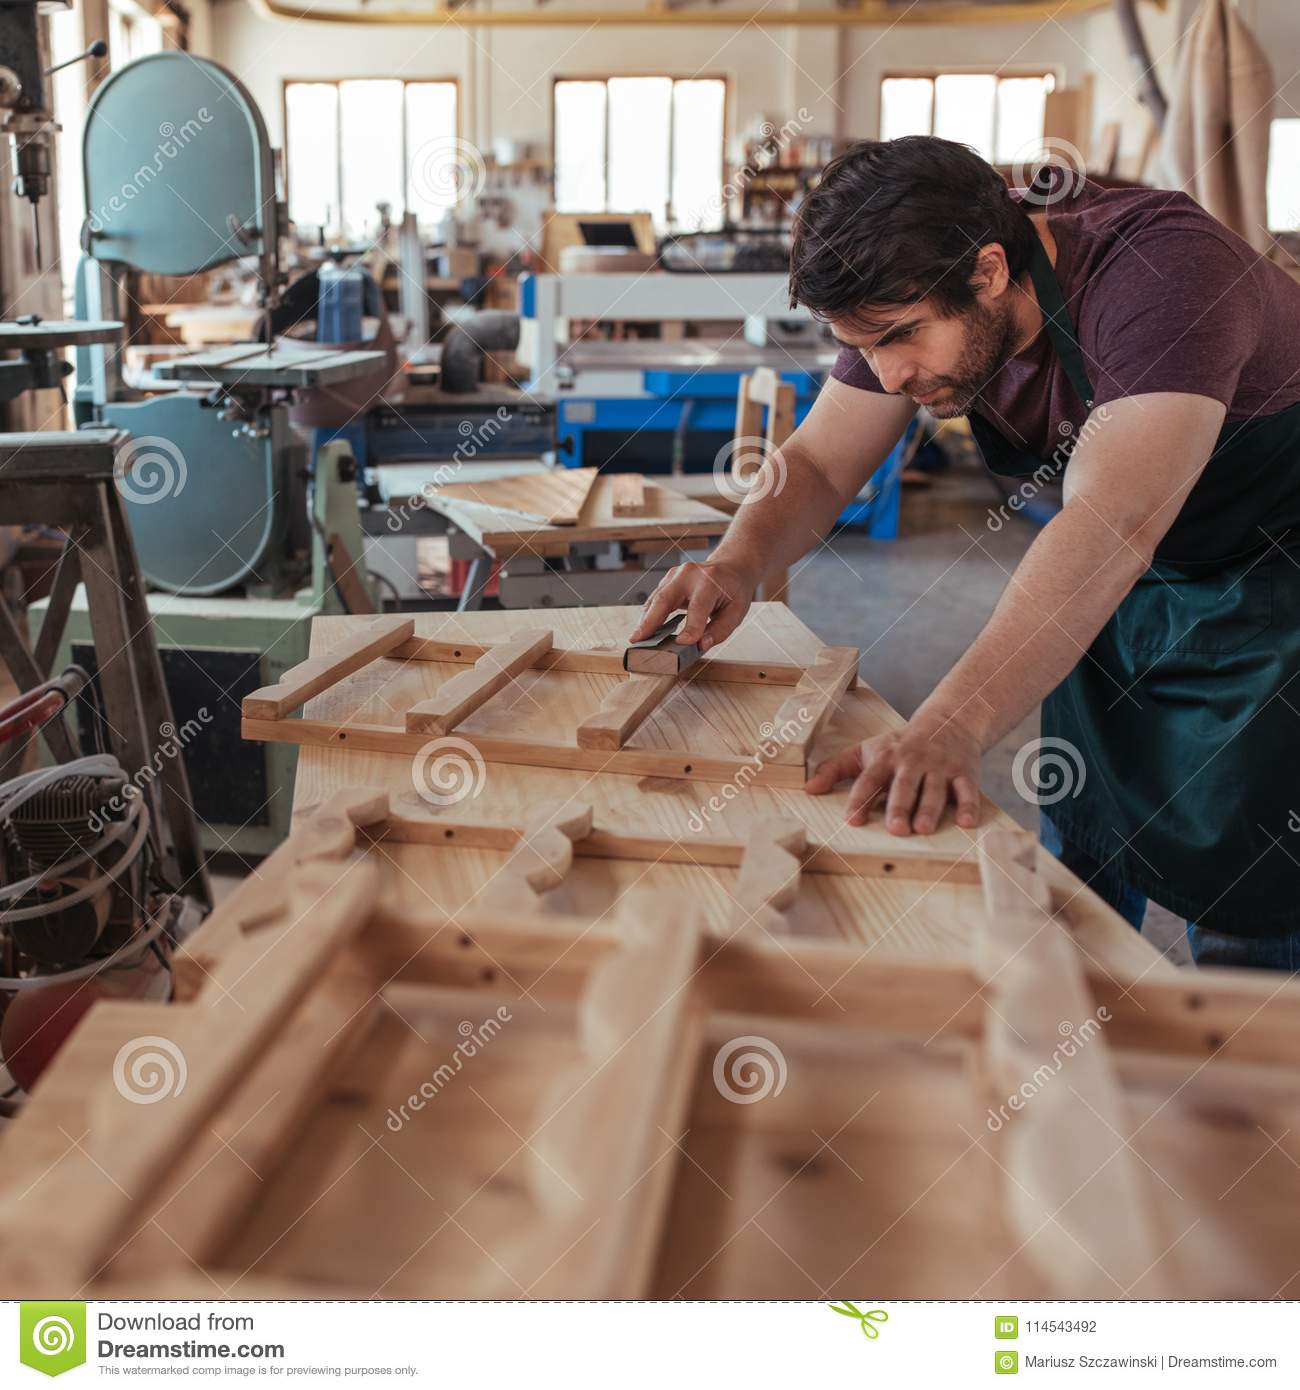 Craftsman Skillfully Sanding Wood While Working In His Carpentry